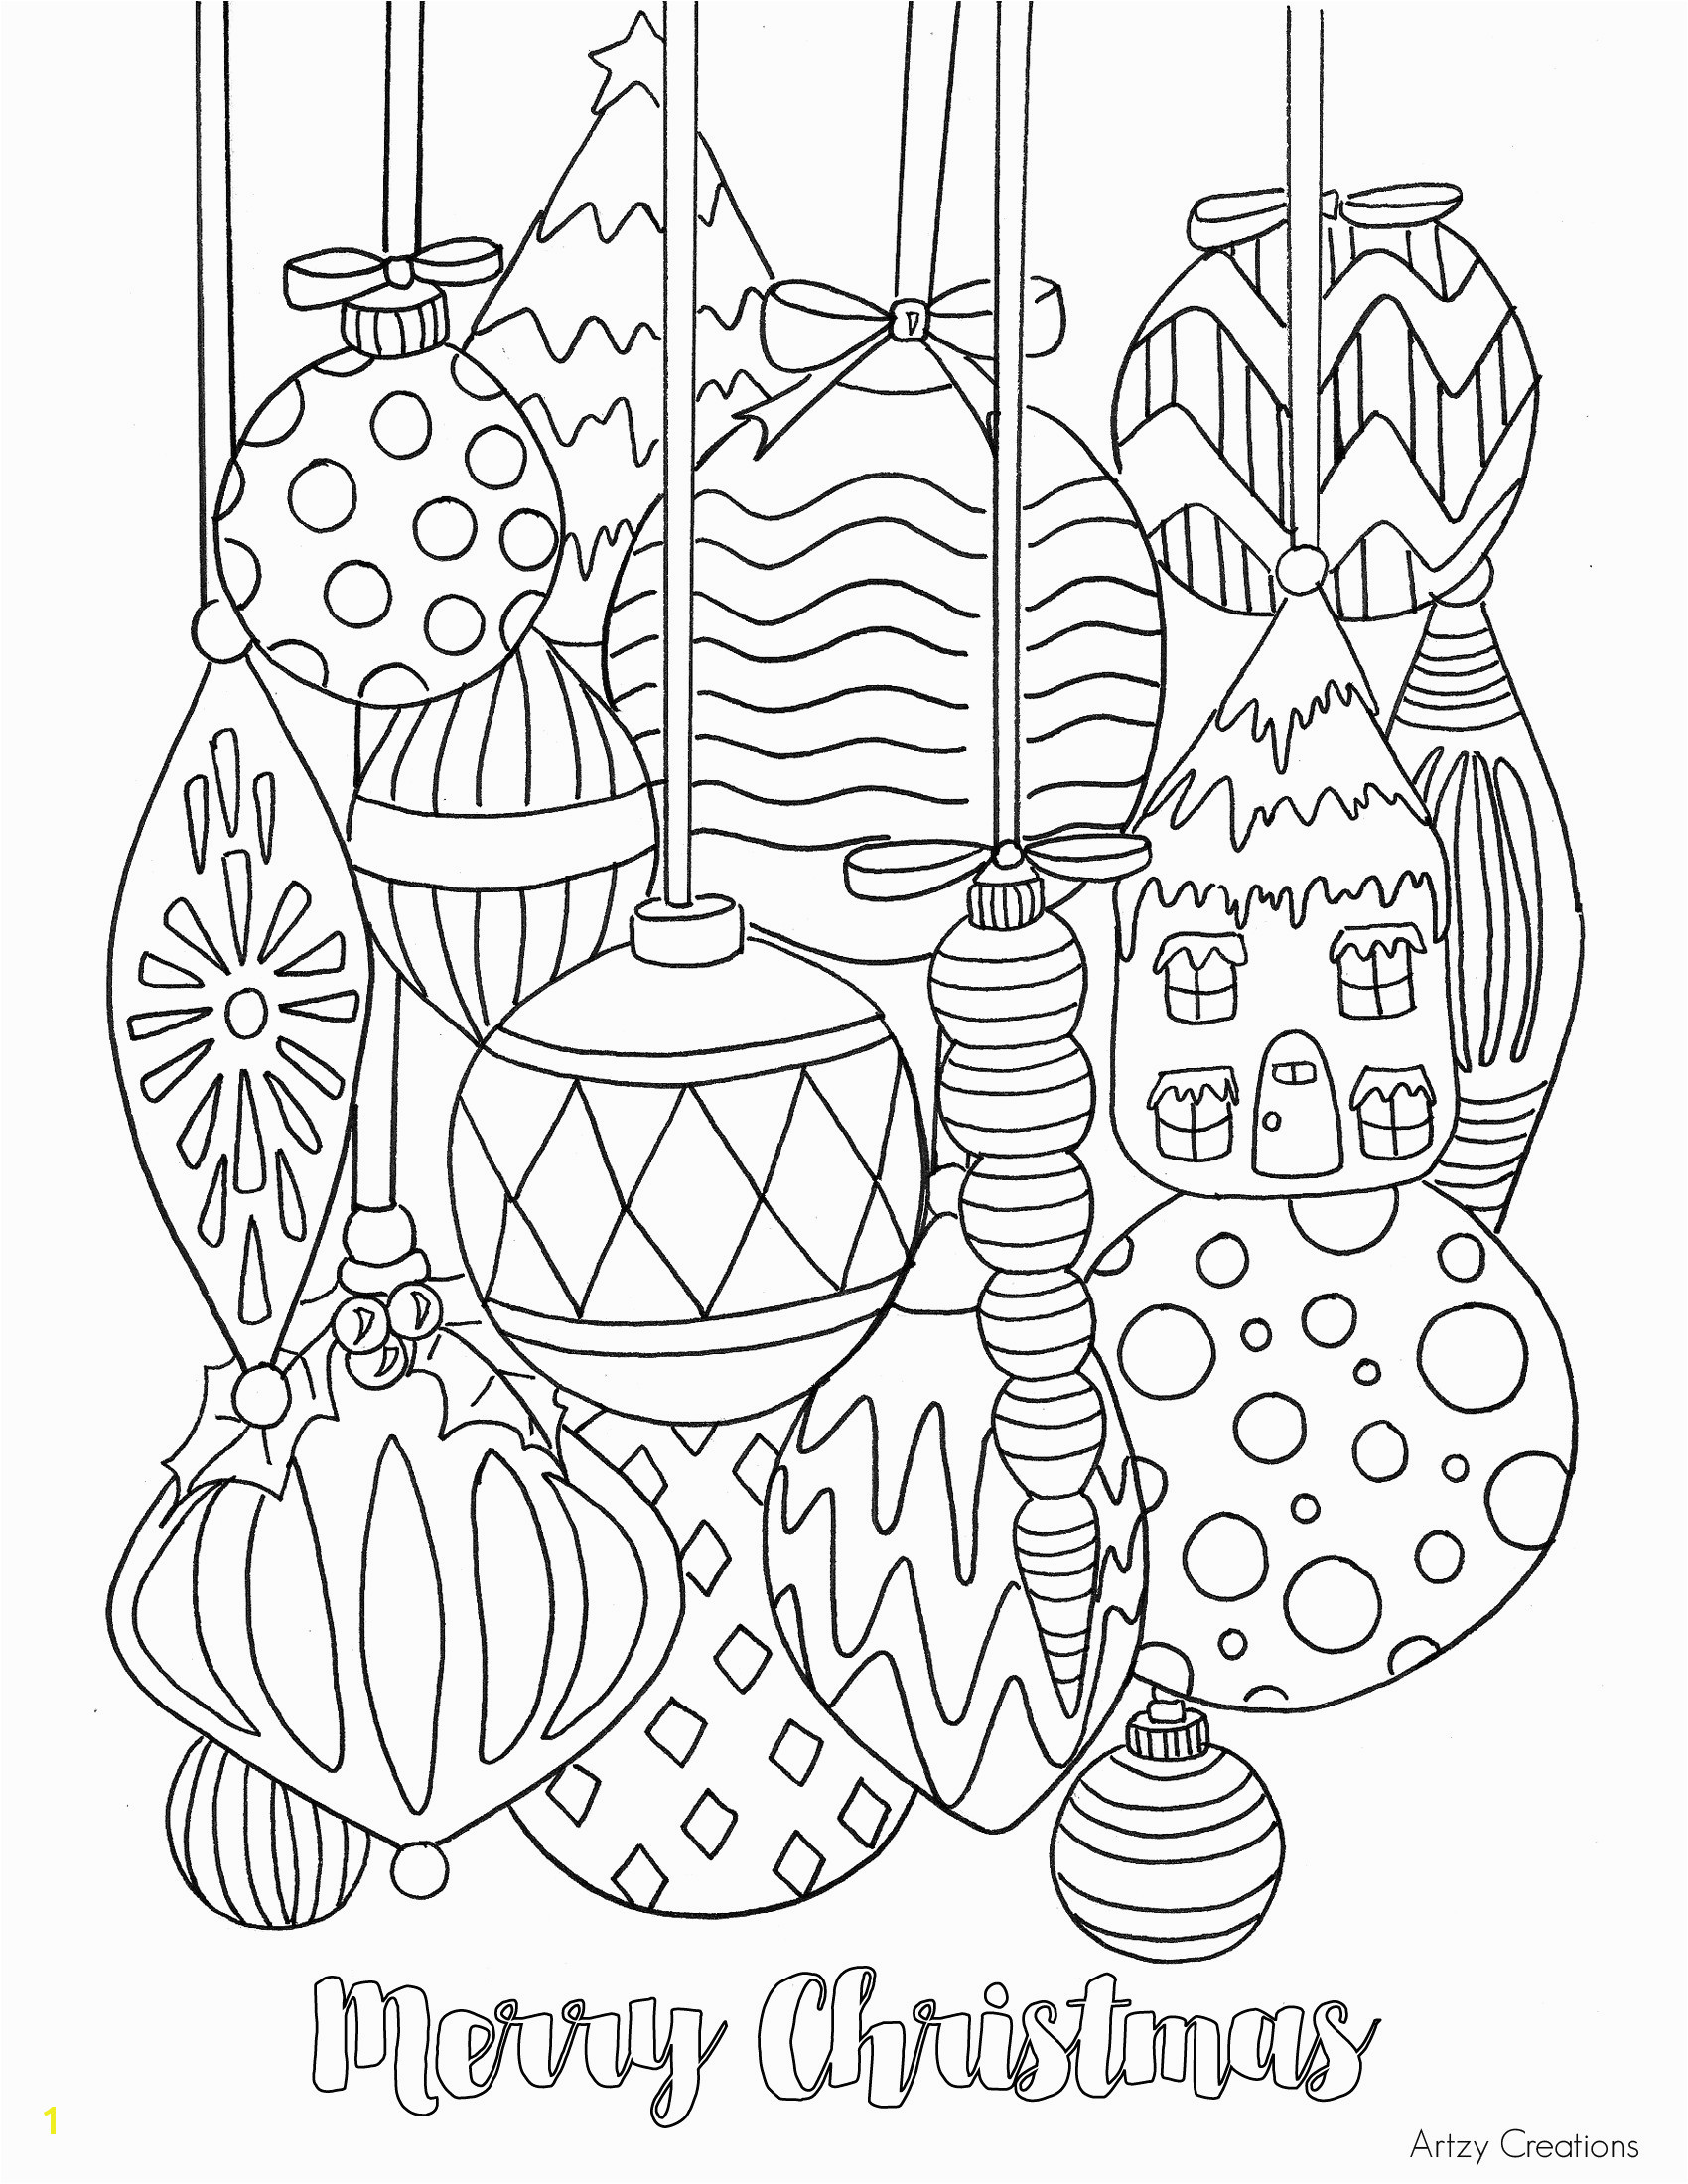 Fascinating Mandala Coloring Book For Kids As Though Christmas Coloring Pages Printable Free Elegant Best Page Adult Od